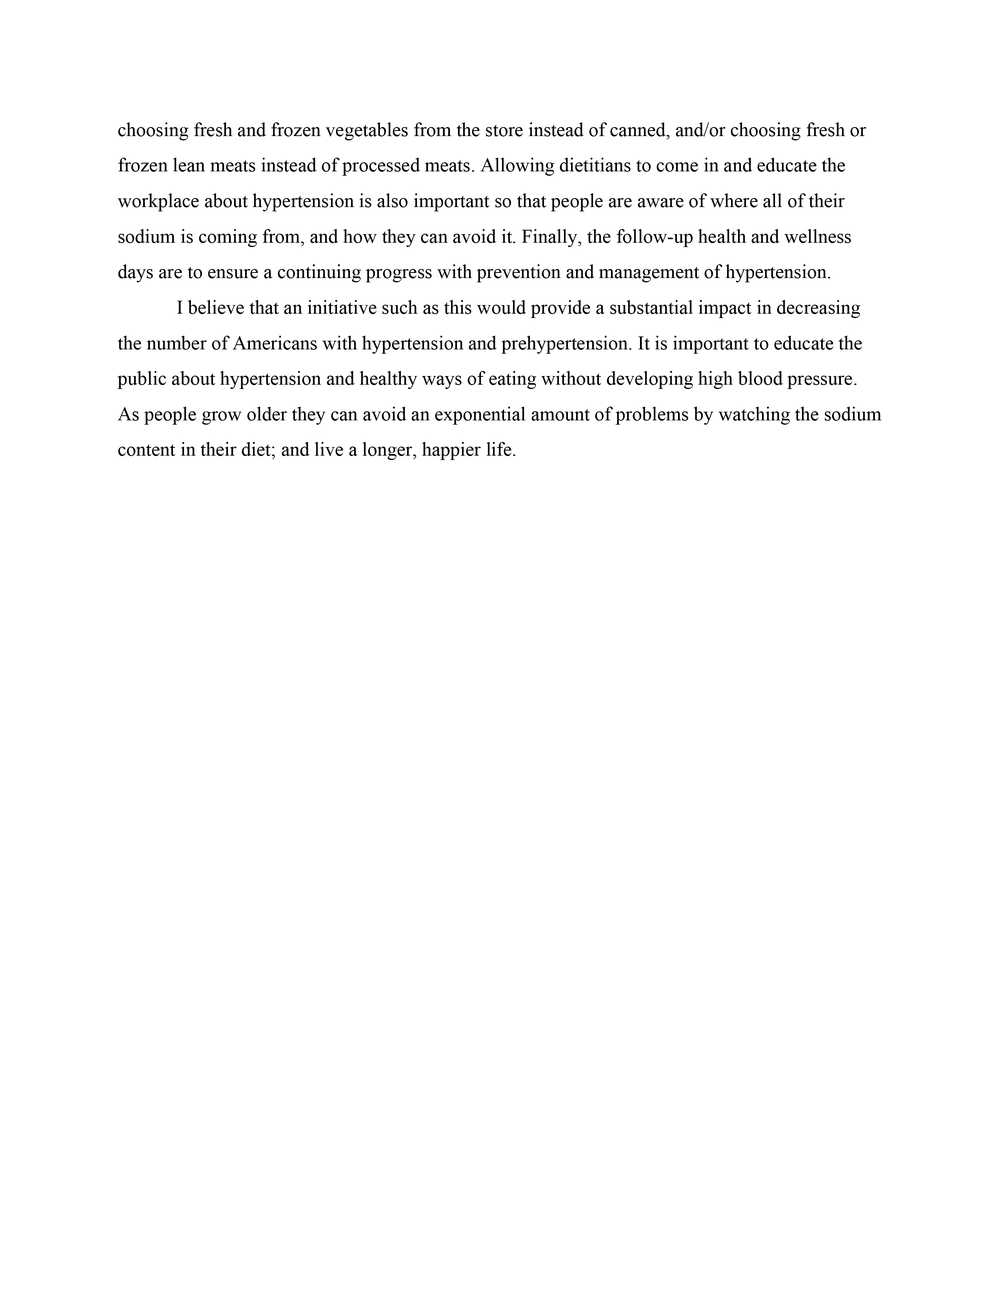 Natalie Olrich Essay, Page 2